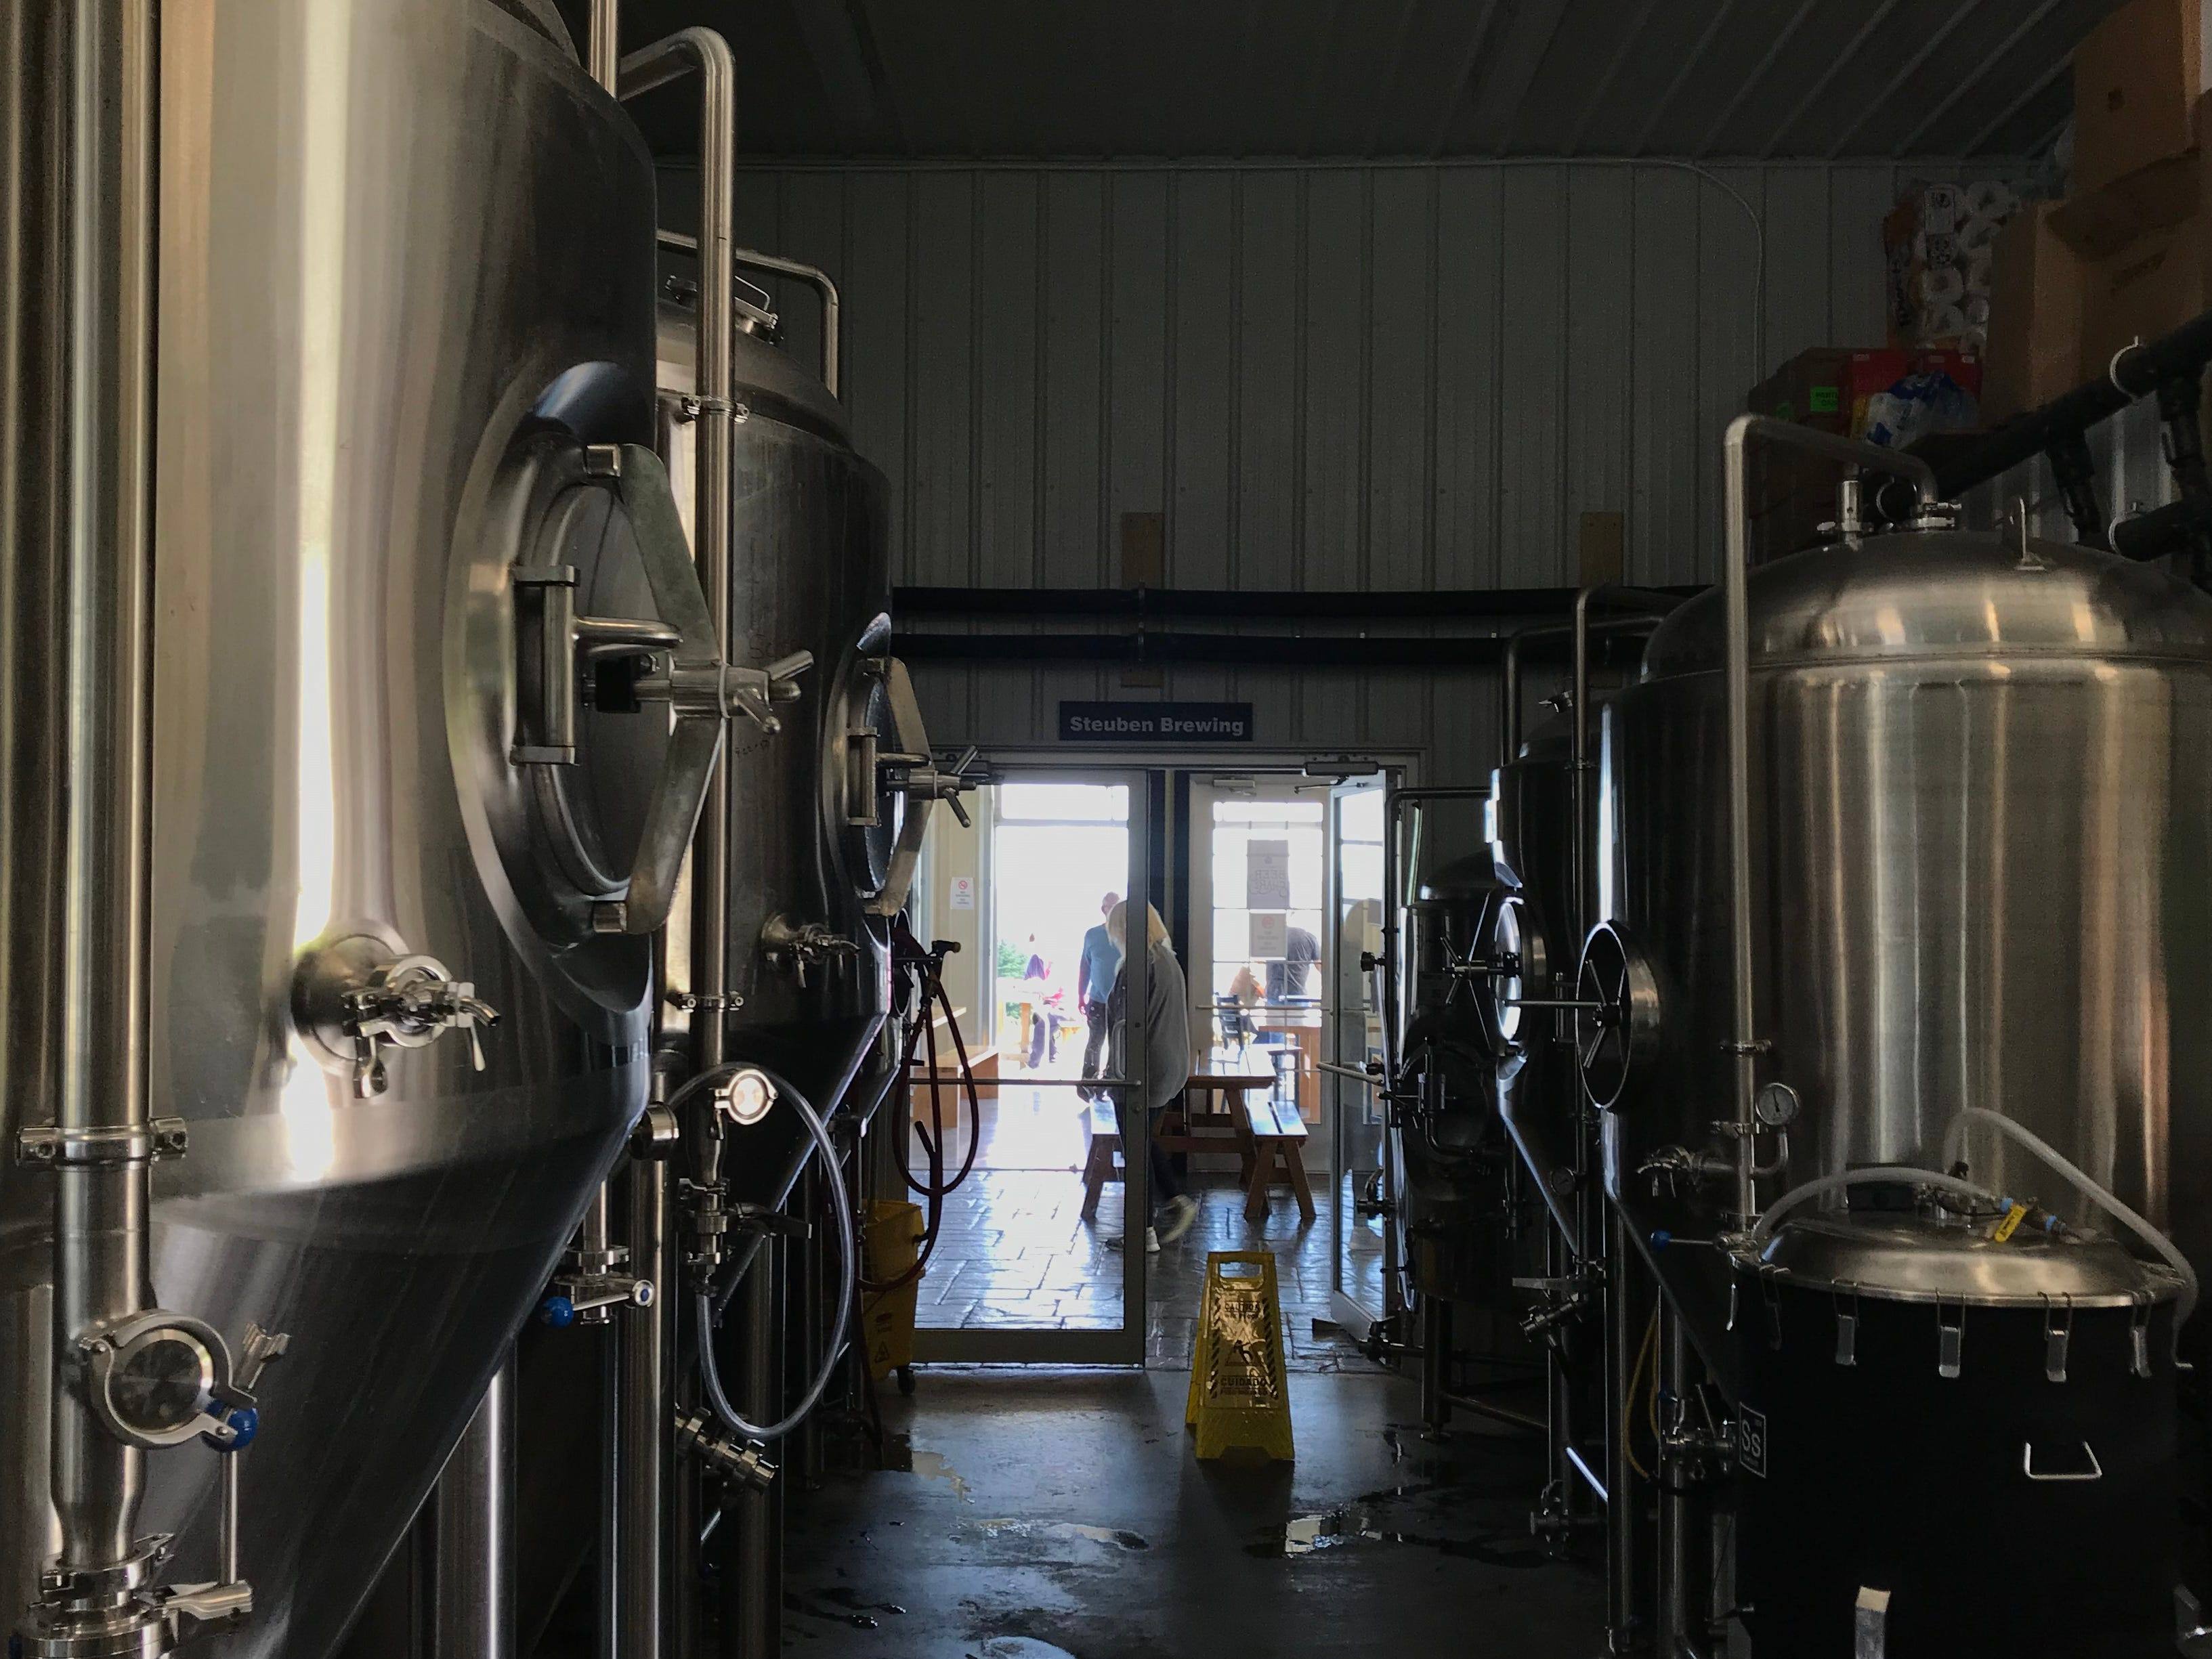 Looking out from the brewhouse into the taproom at Steuben Brewing on Keuka Lake